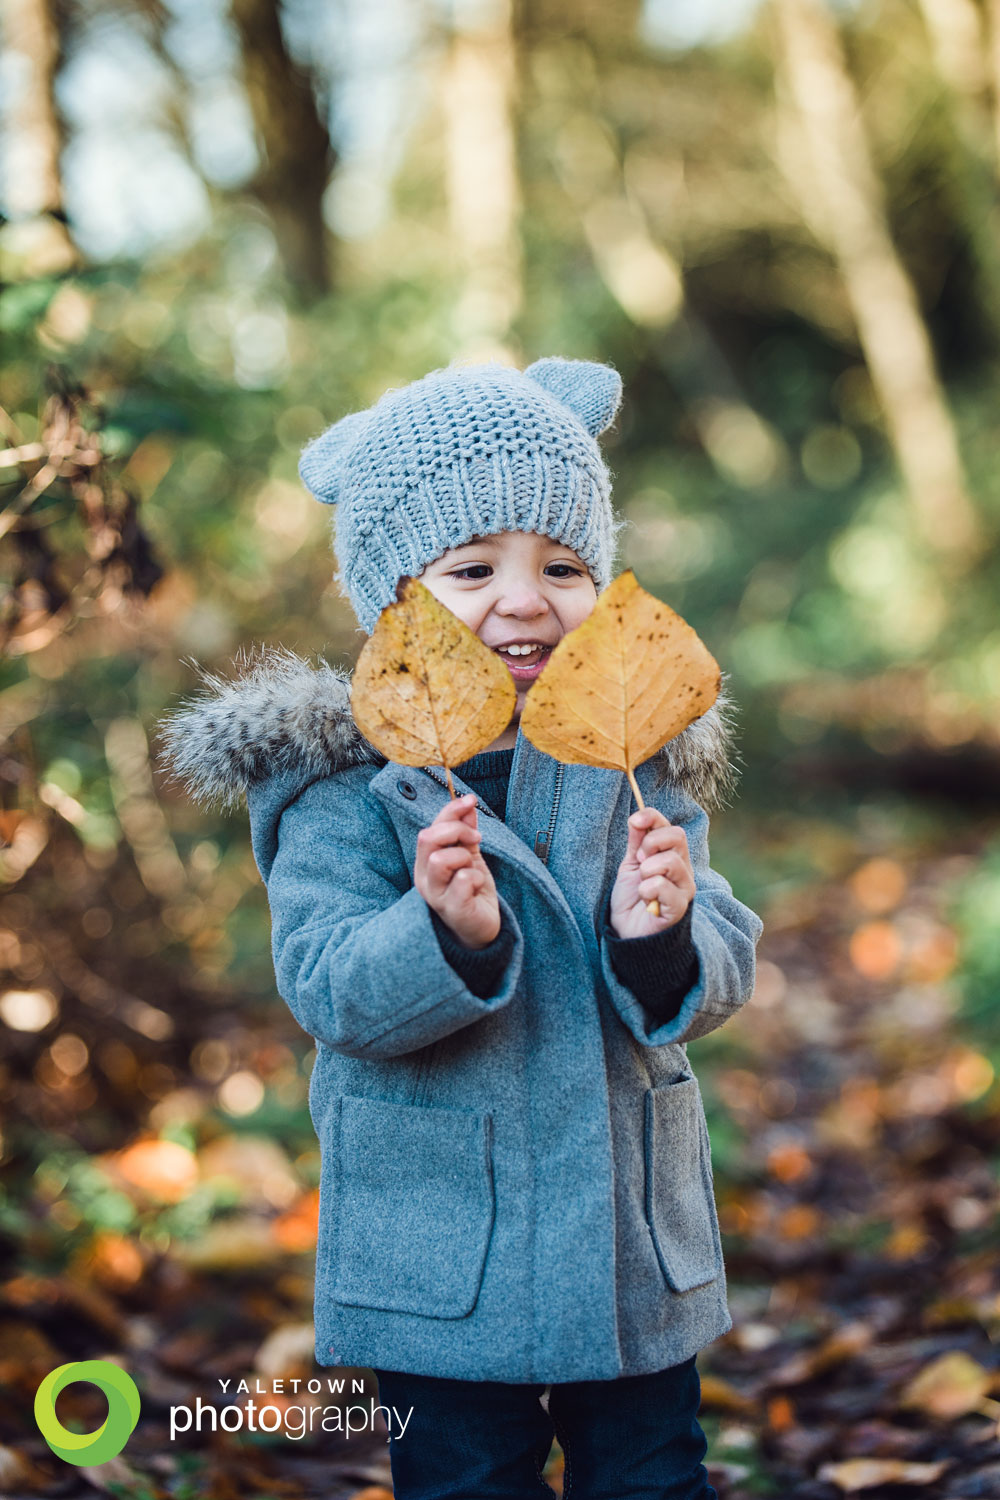 winter-kids-photography-children-photographer-vancouver-family-photographer-leaves-southlands-yaletown-photography-photo.jpg